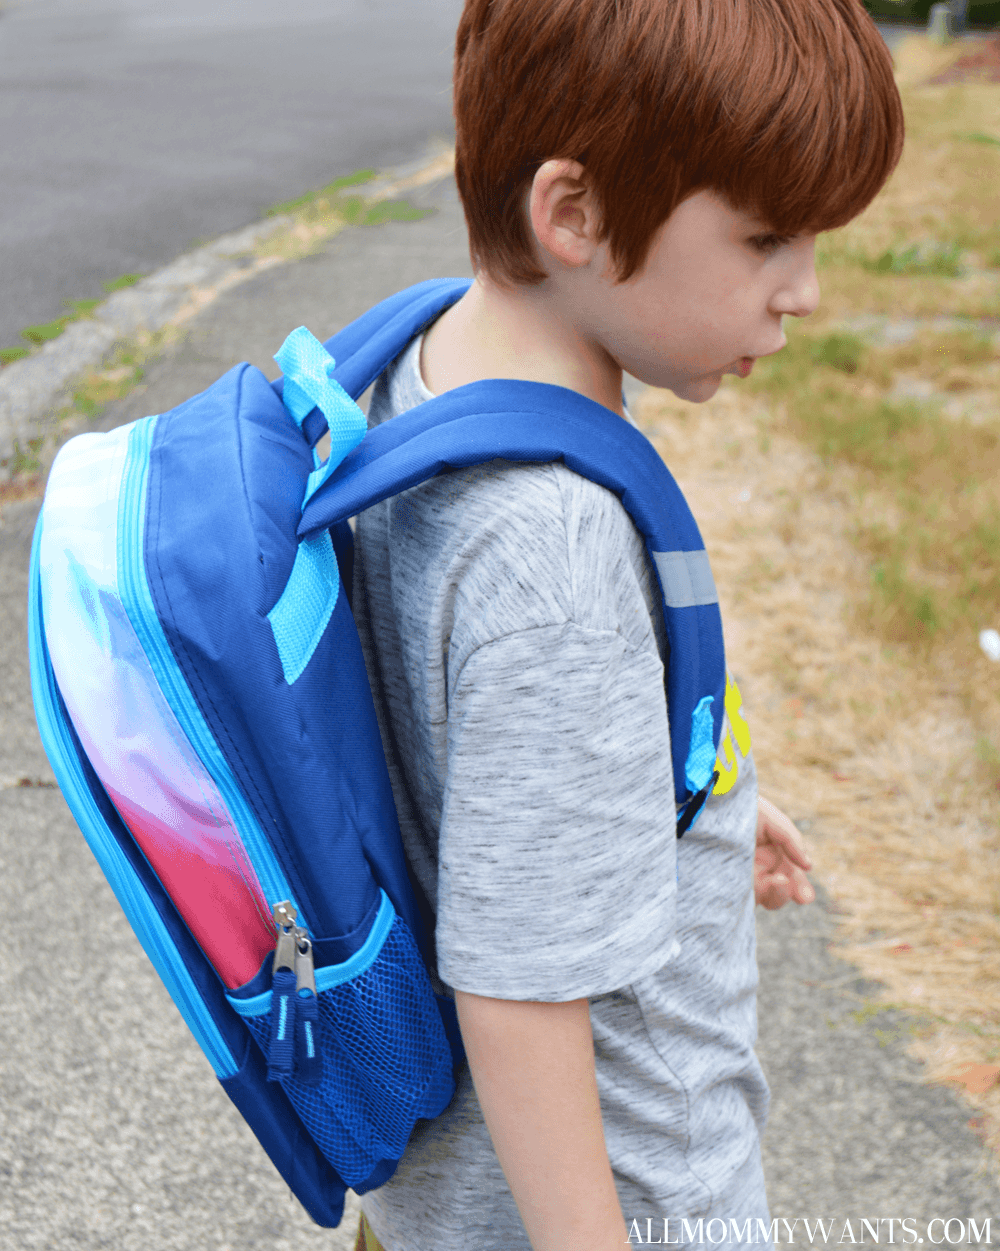 We Are Heading Back To School With Pj Masks Gear (new Video)